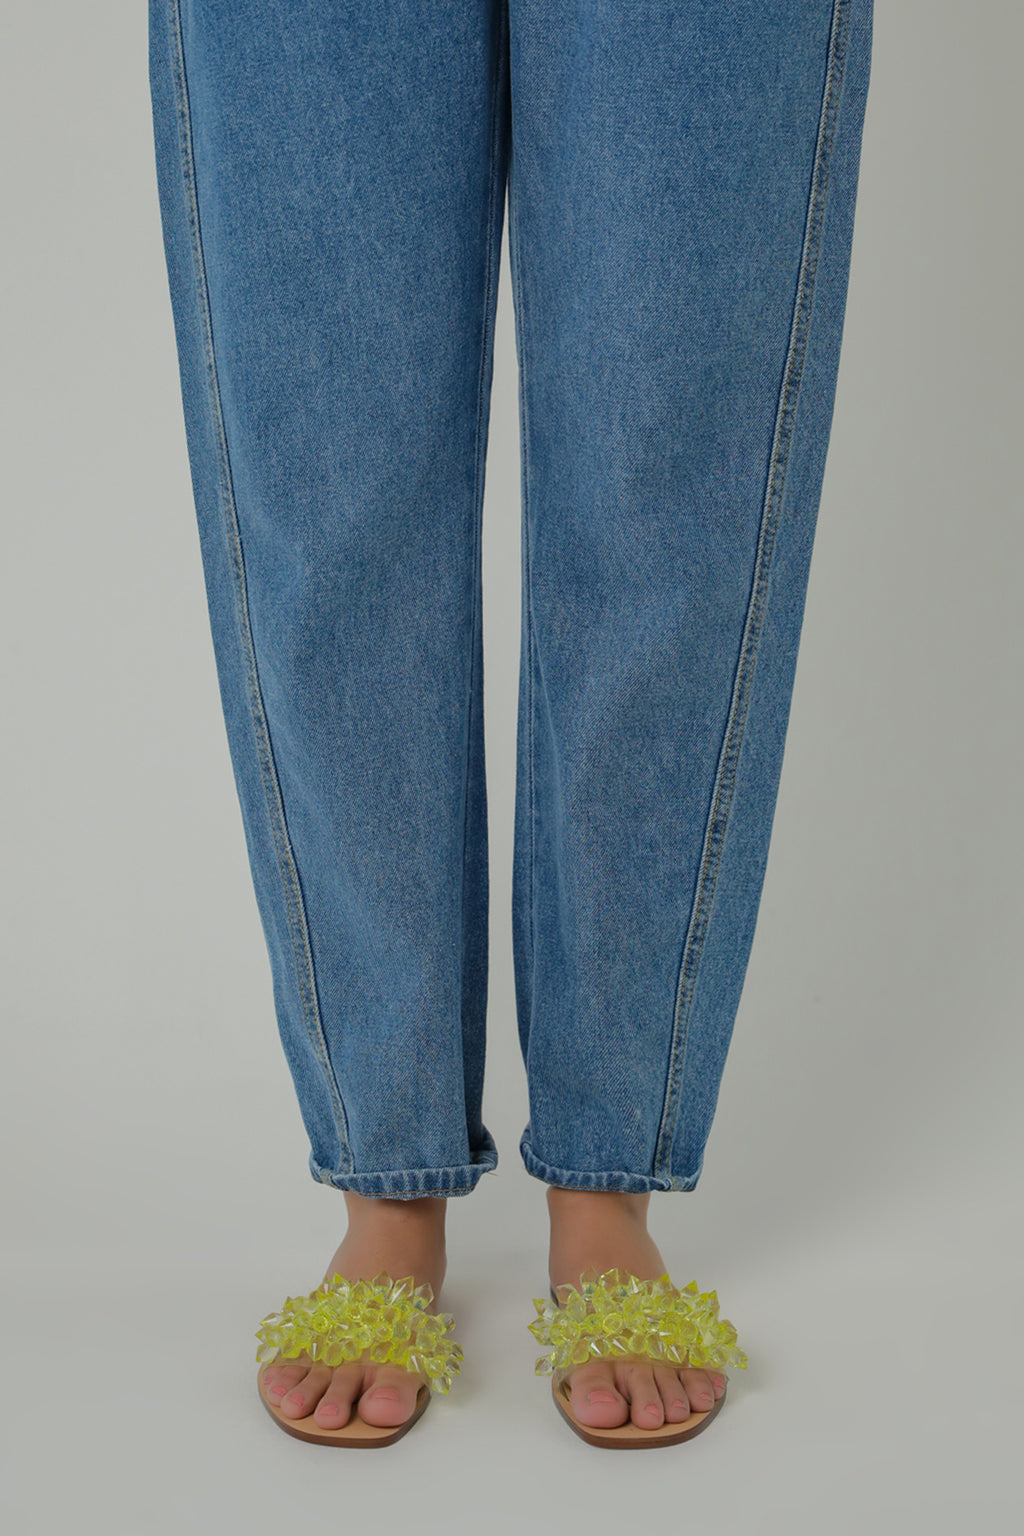 SLOUCHY JEANS (WBF111661)